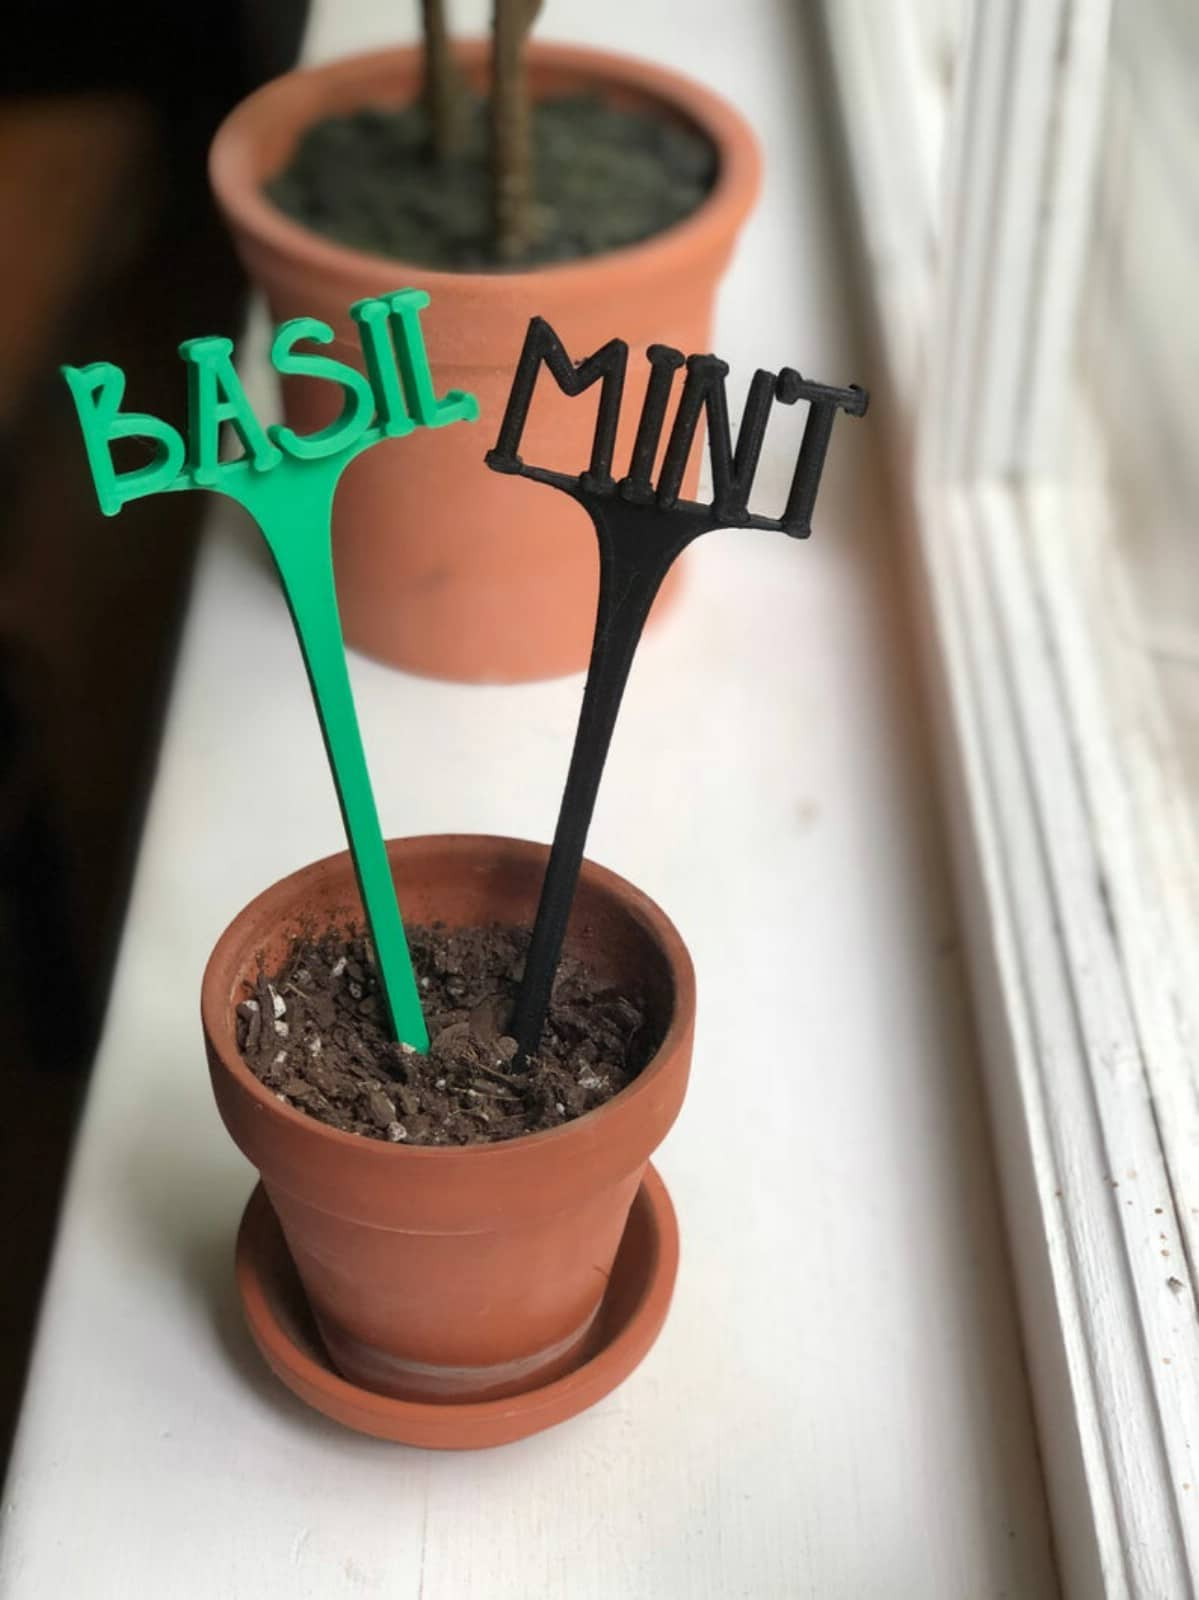 Basil and mint labels in small terra cotta pot